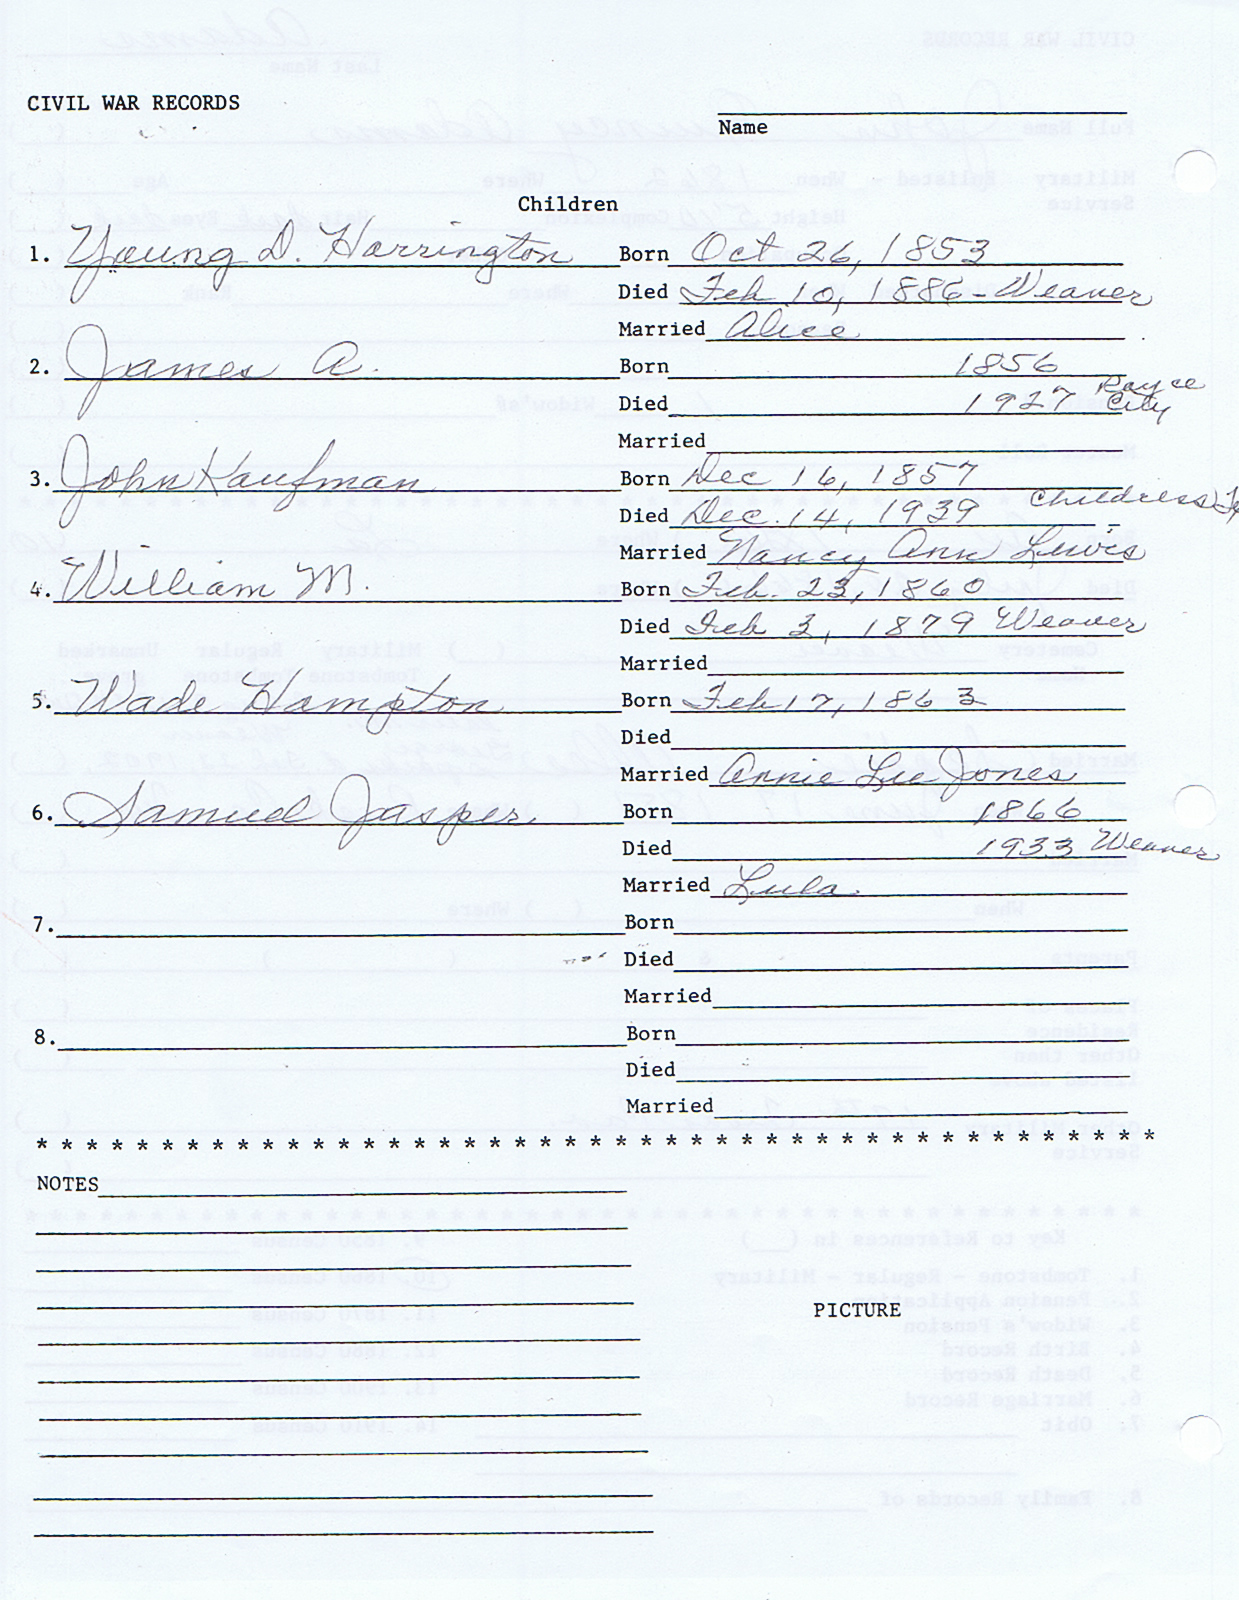 adams-kaufman_civil_war_records-3472a